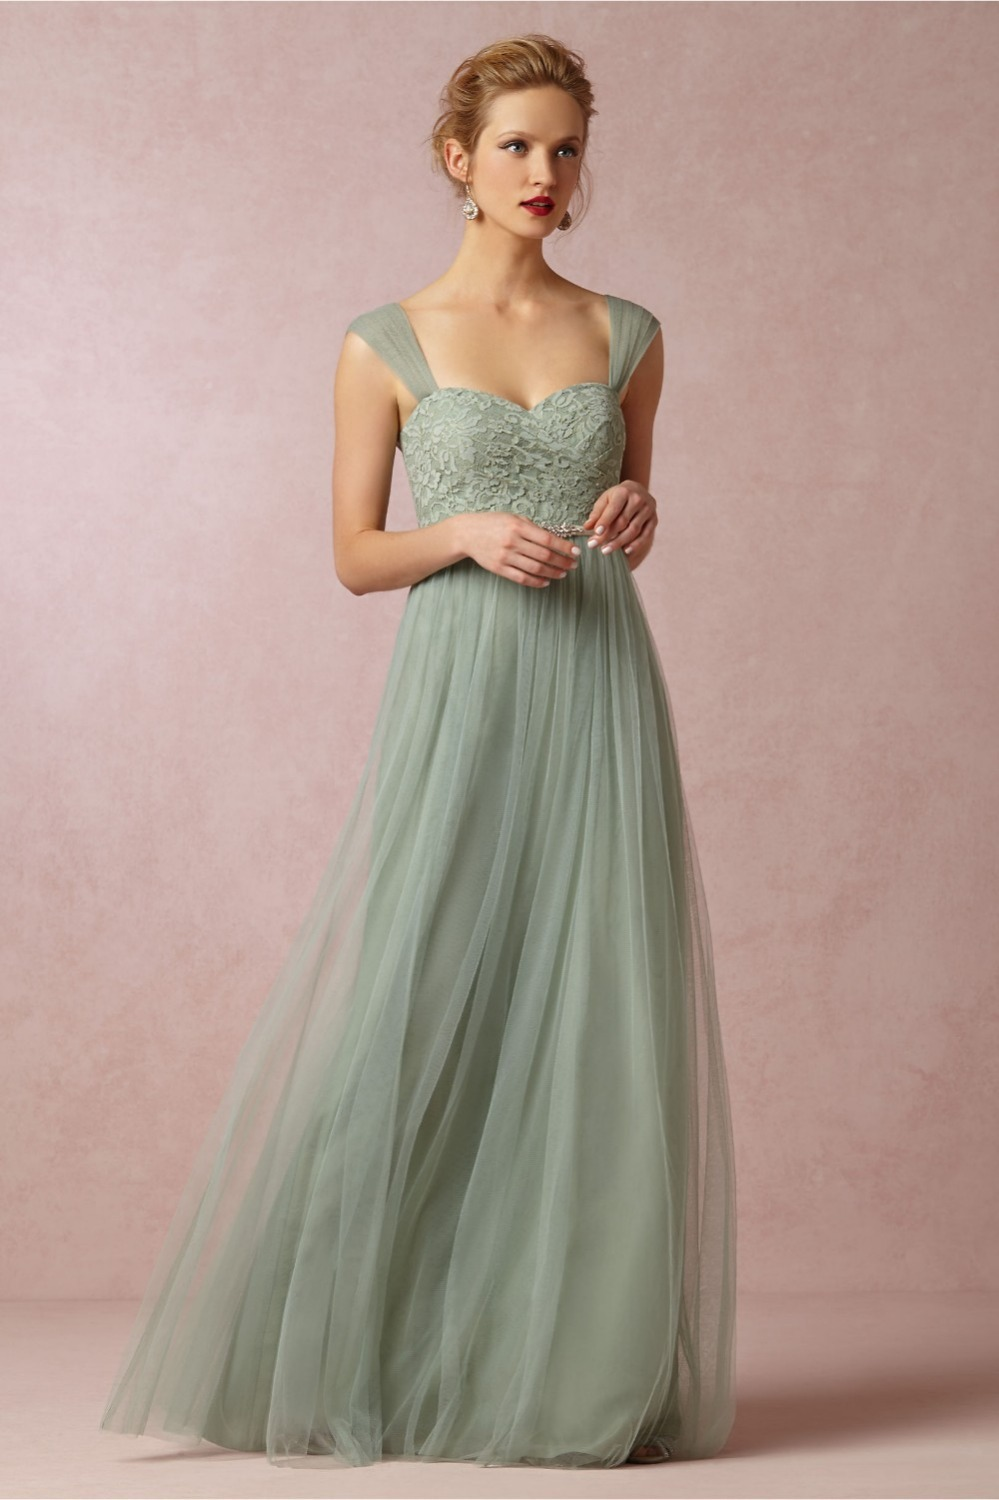 Aliexpress buy vintage bridesmaid dresses lace and tulle aliexpress buy vintage bridesmaid dresses lace and tulle long mint green bridesmaid dress two styles vestidos wedding party dress 2016 from reliable ombrellifo Gallery